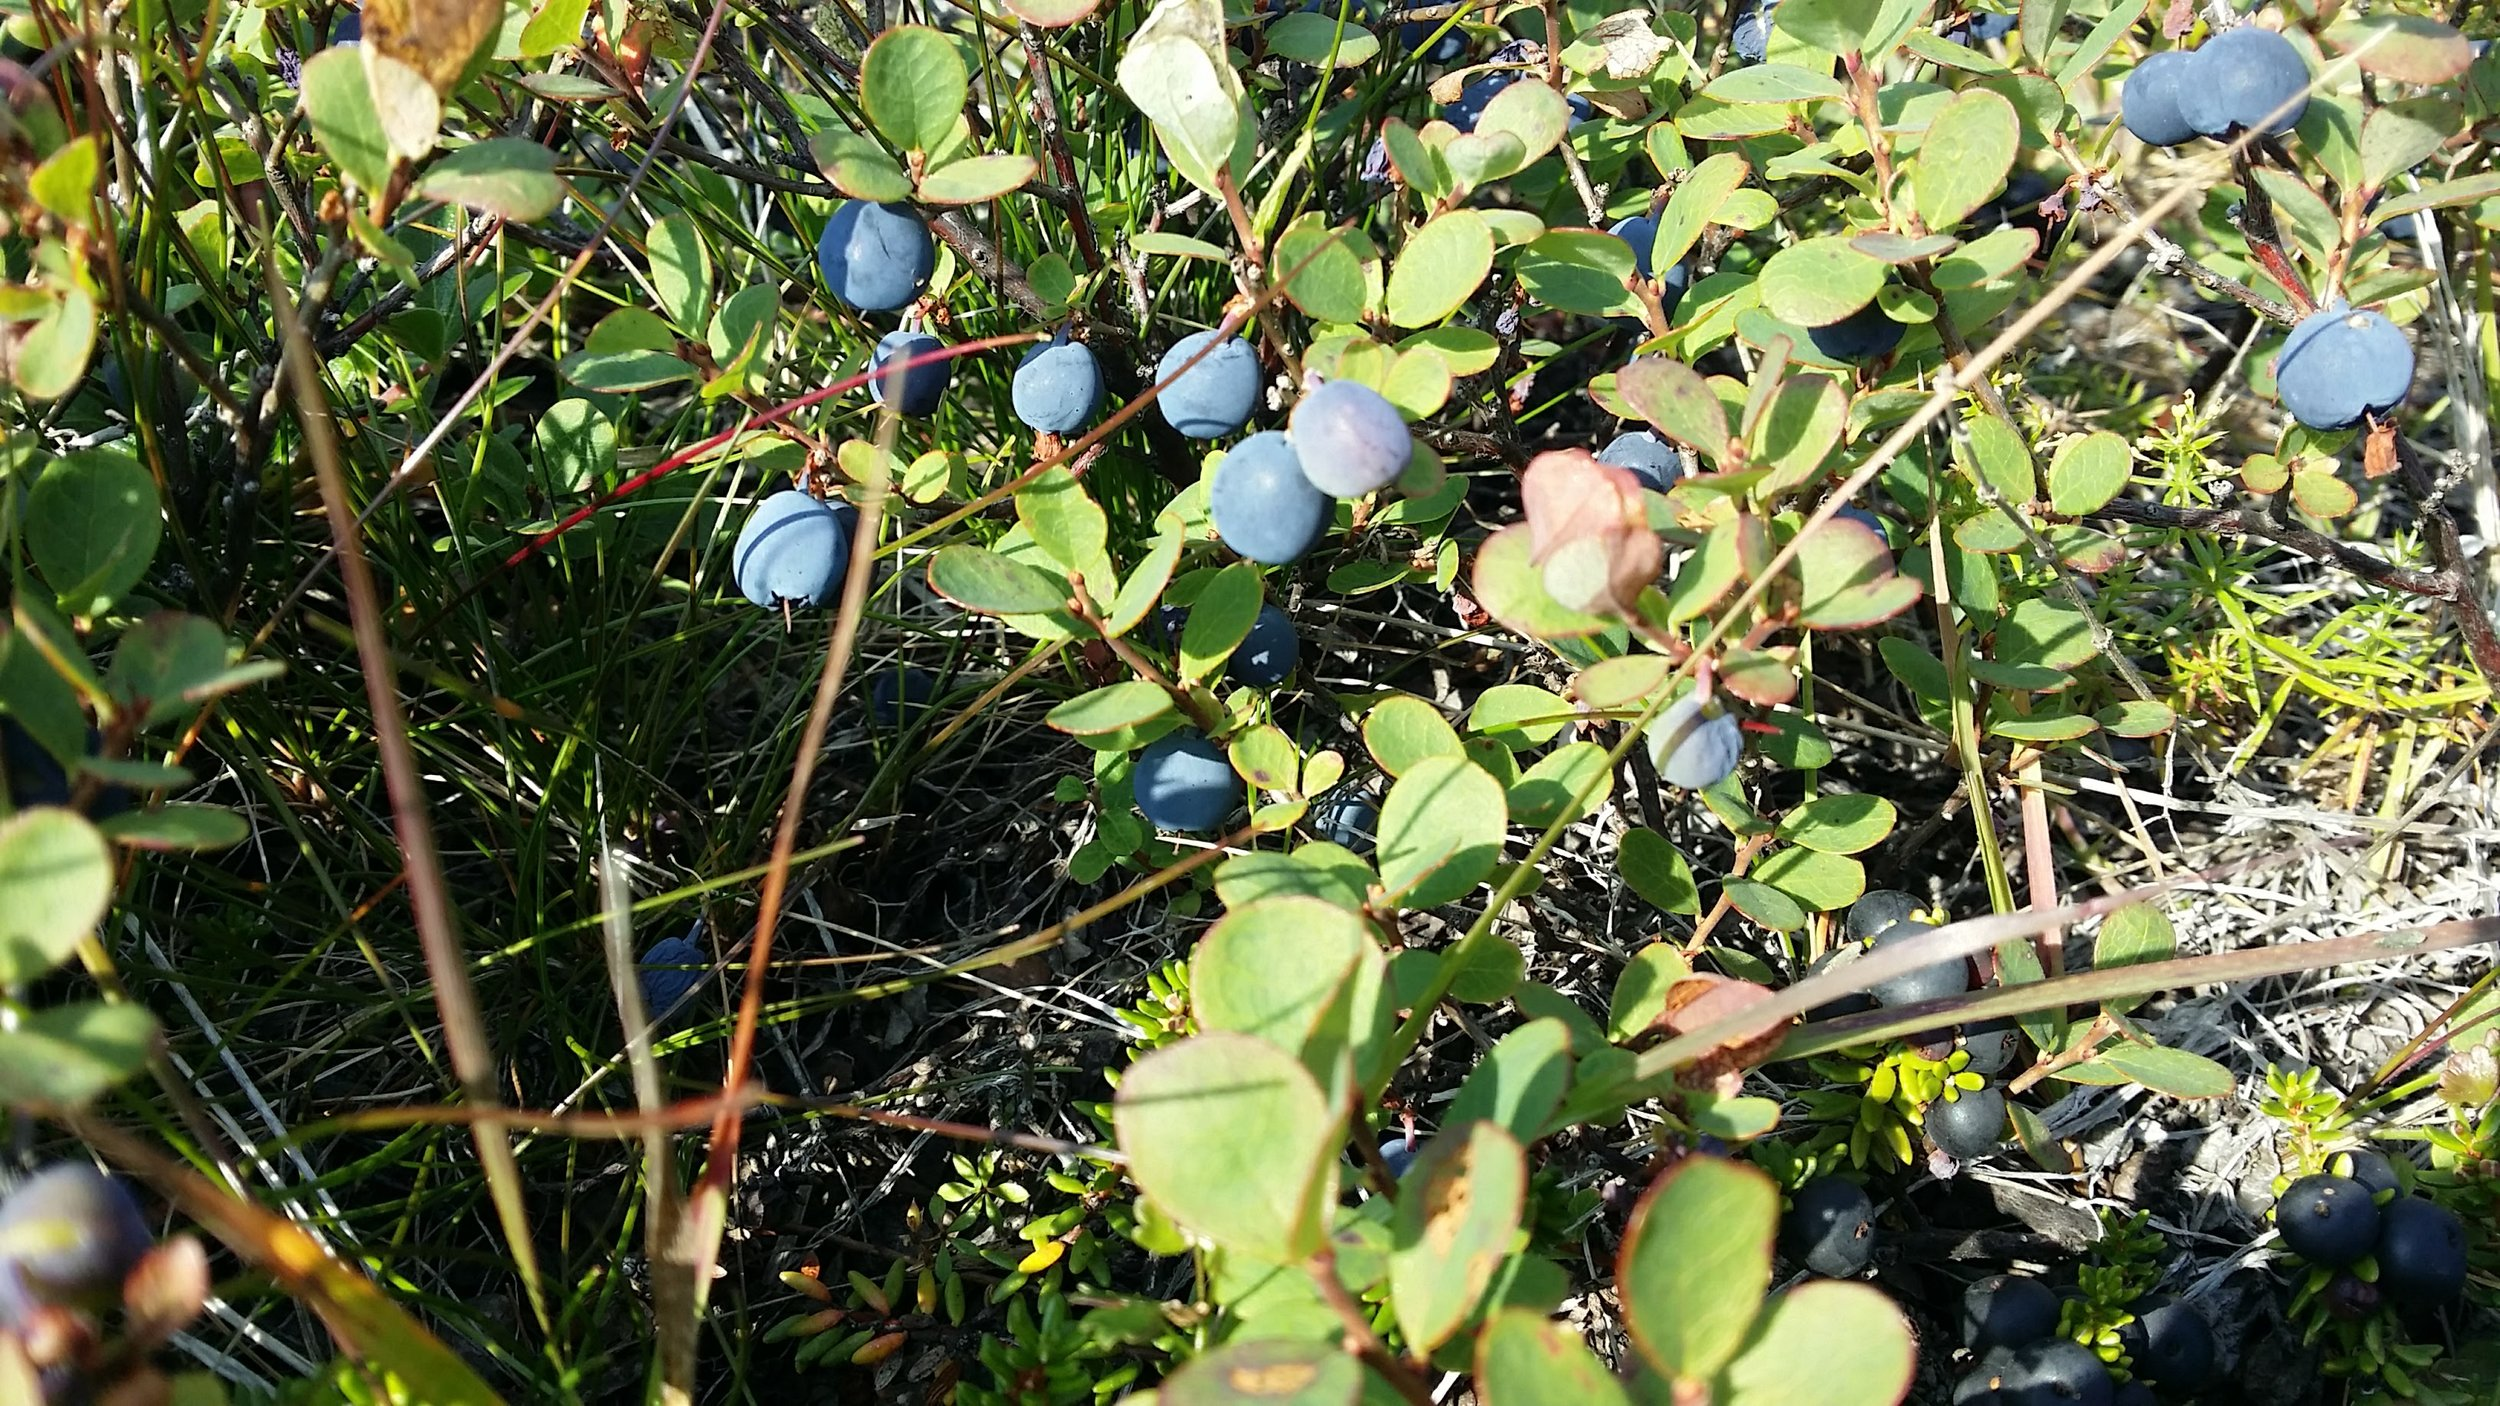 Blueberries waiting to be picked!